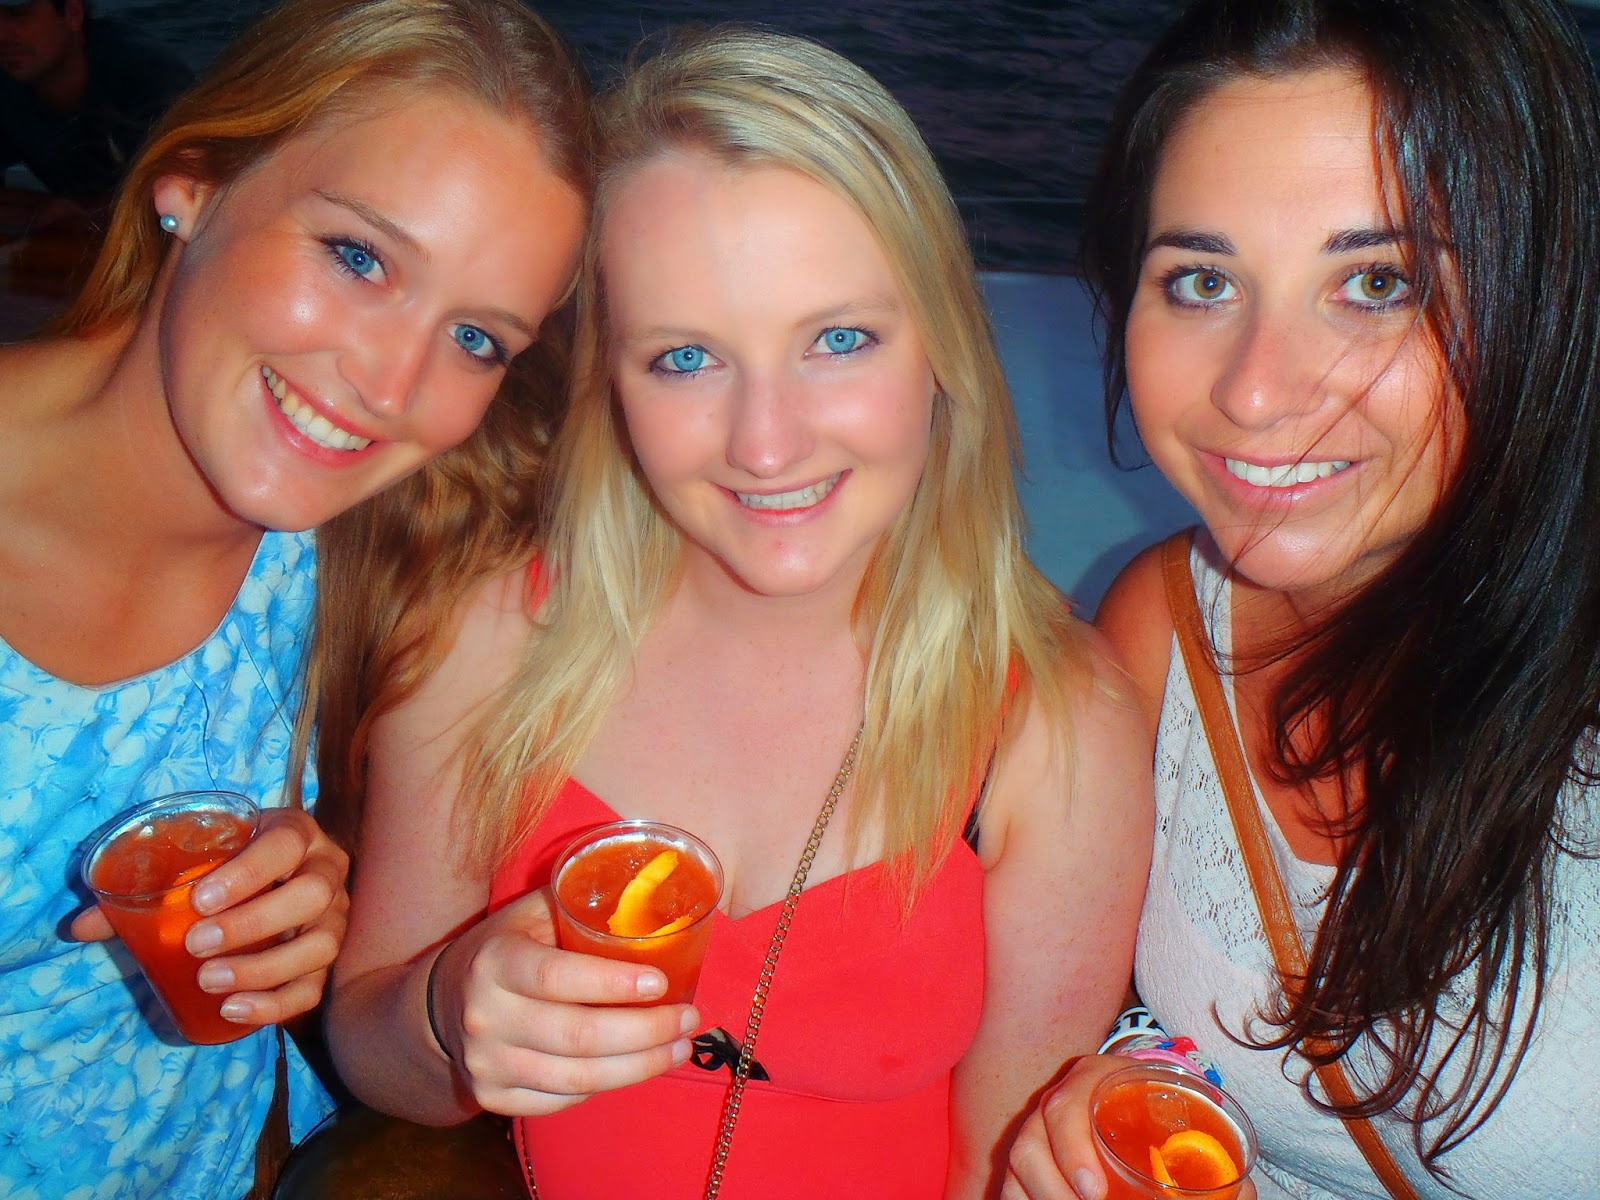 me and the girls with our cocktails in hand